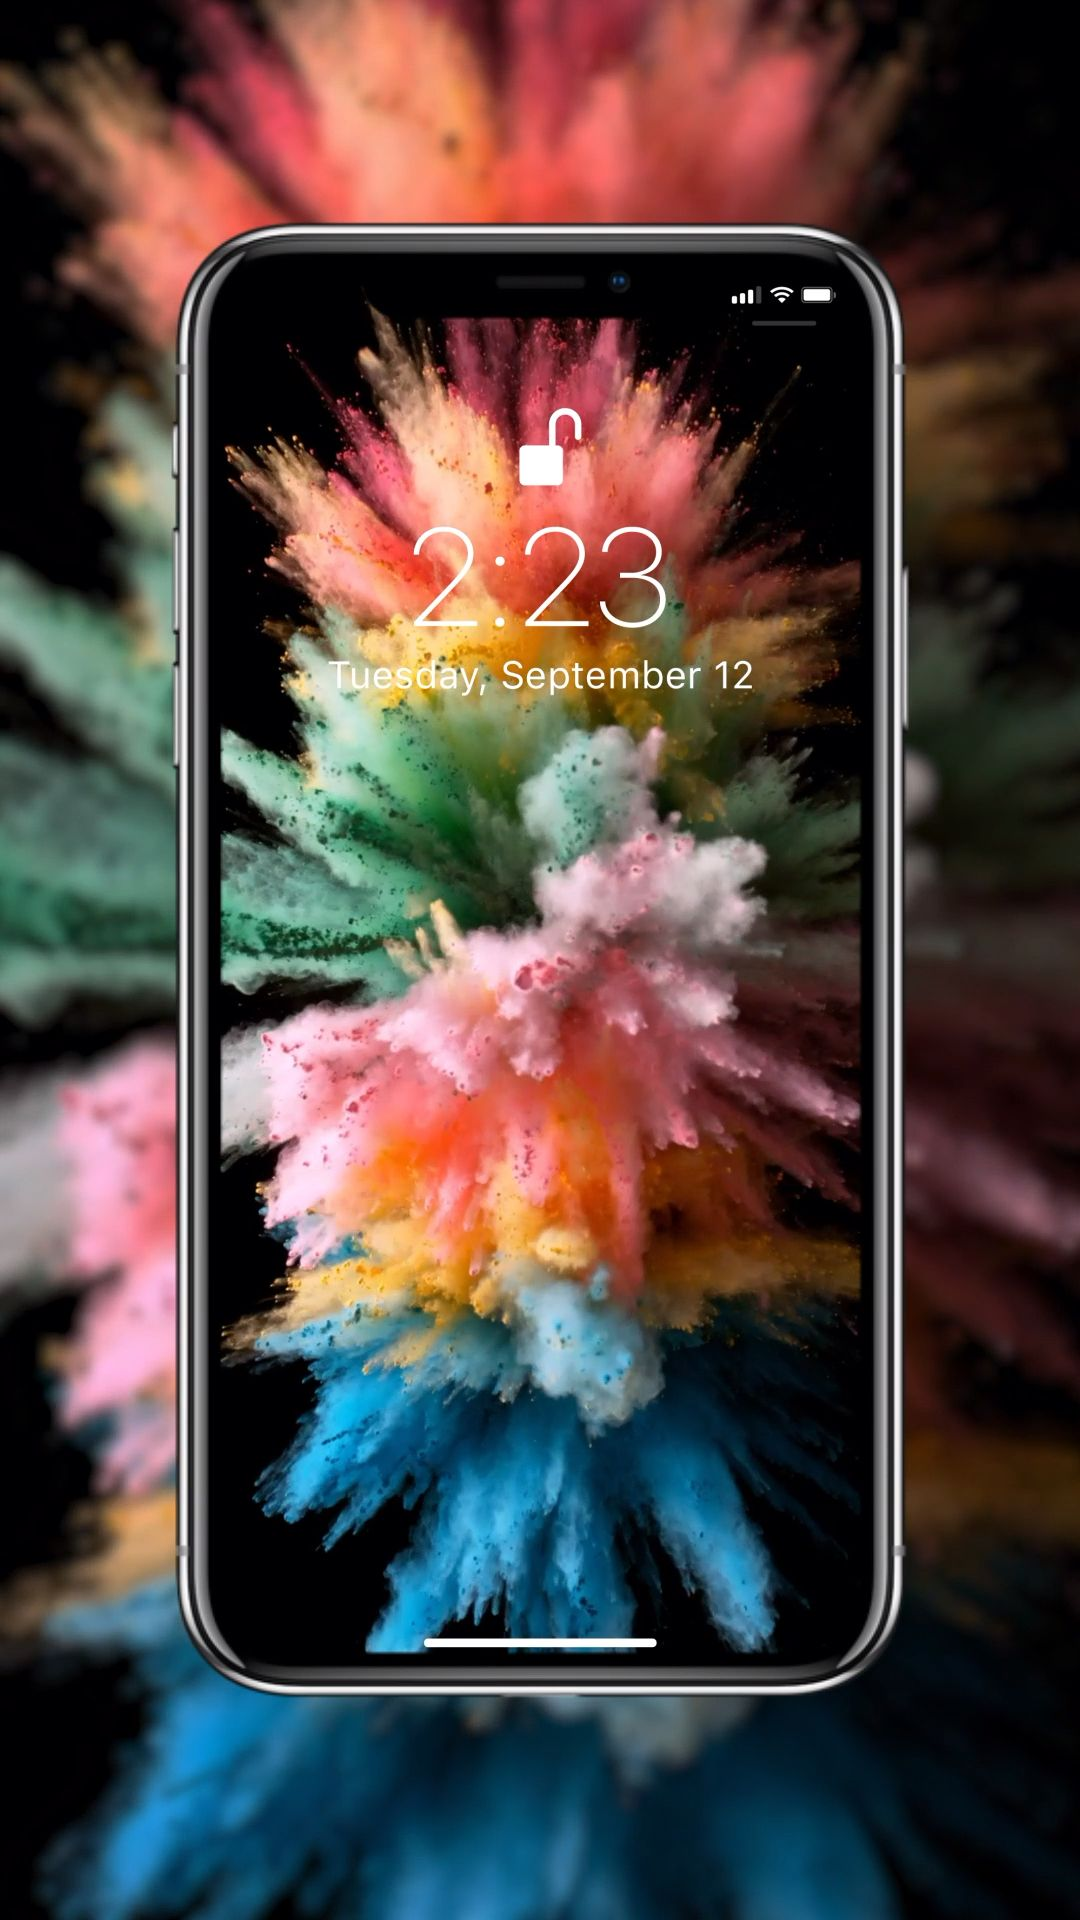 Awesome live wallpaper